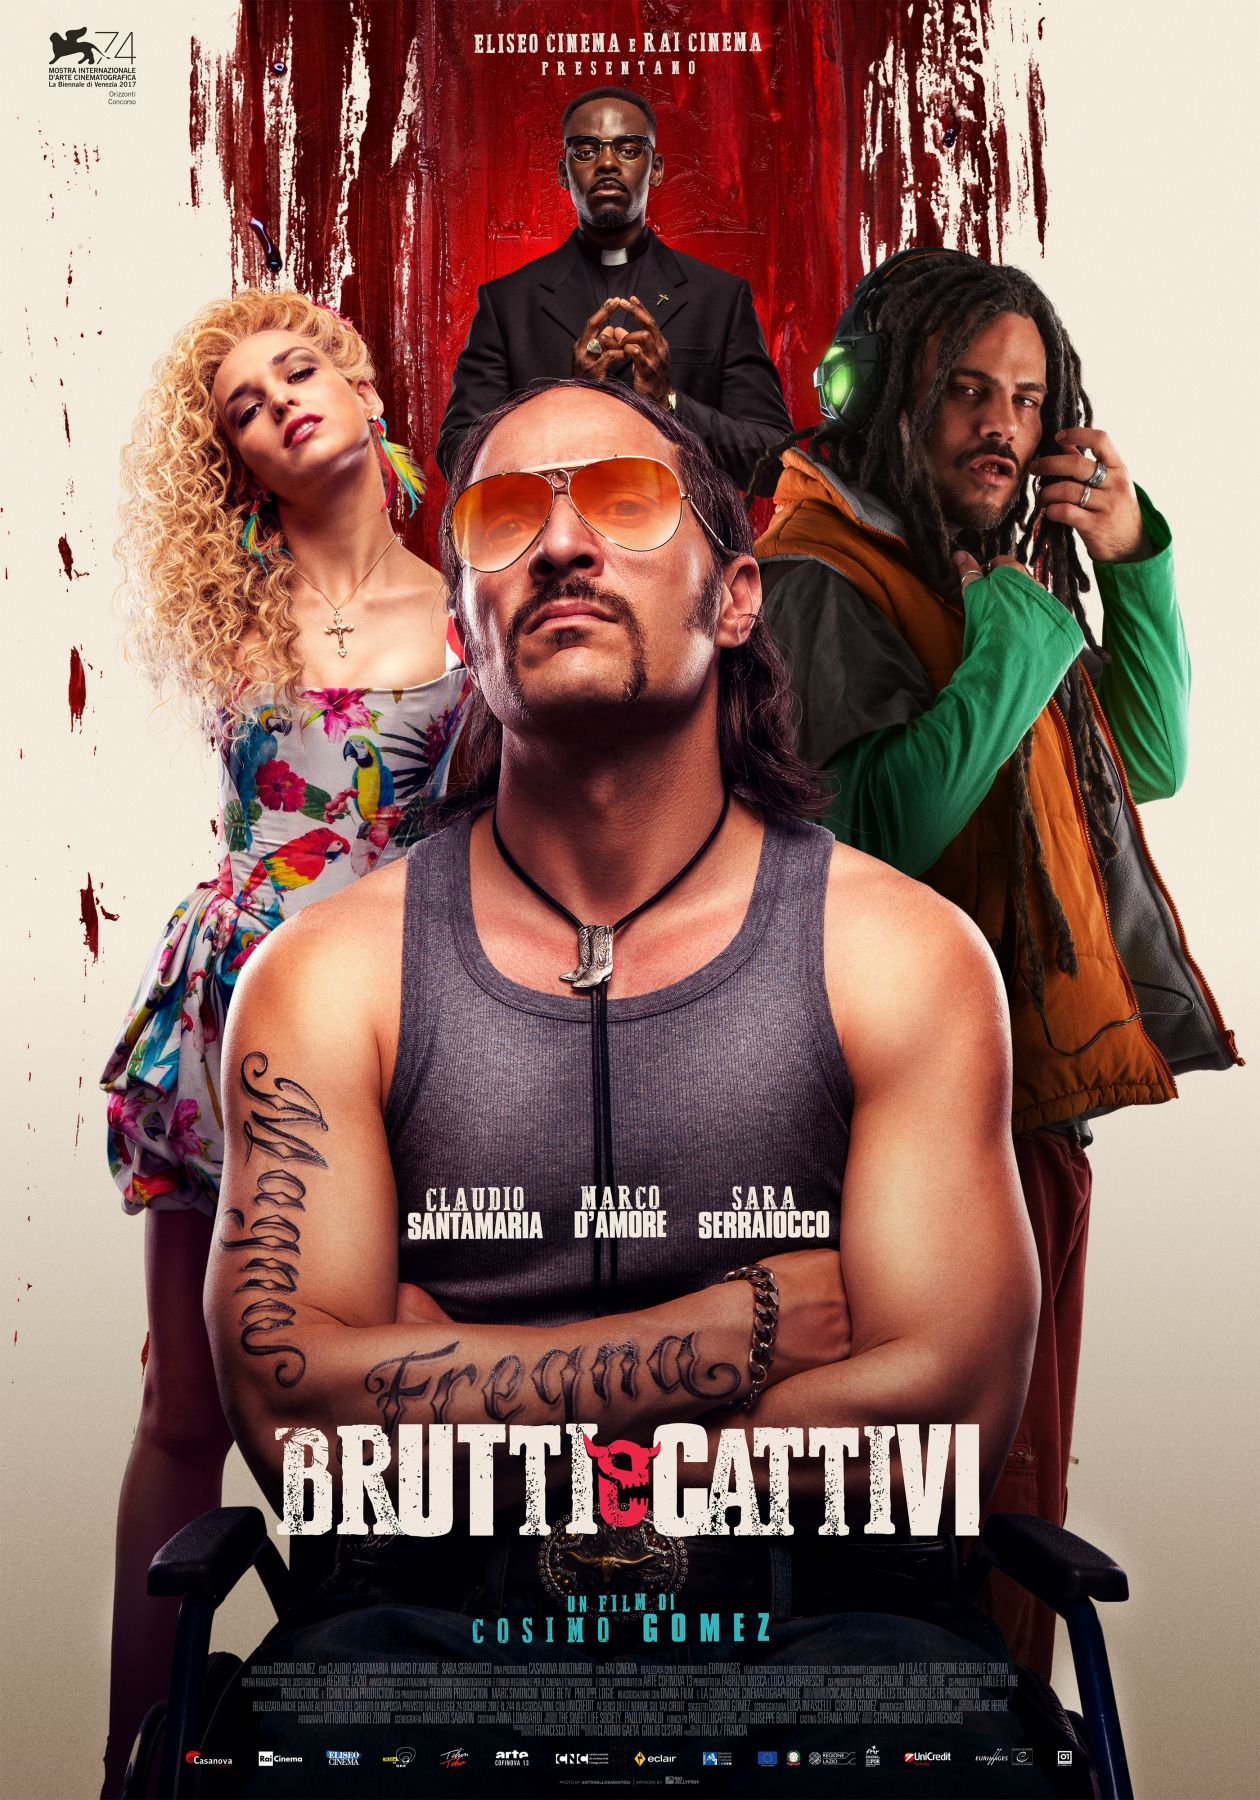 Sara Serraiocco actress | Brutti e cattivi / Cosimo Gomez 2017 Movie Poster Affiche film